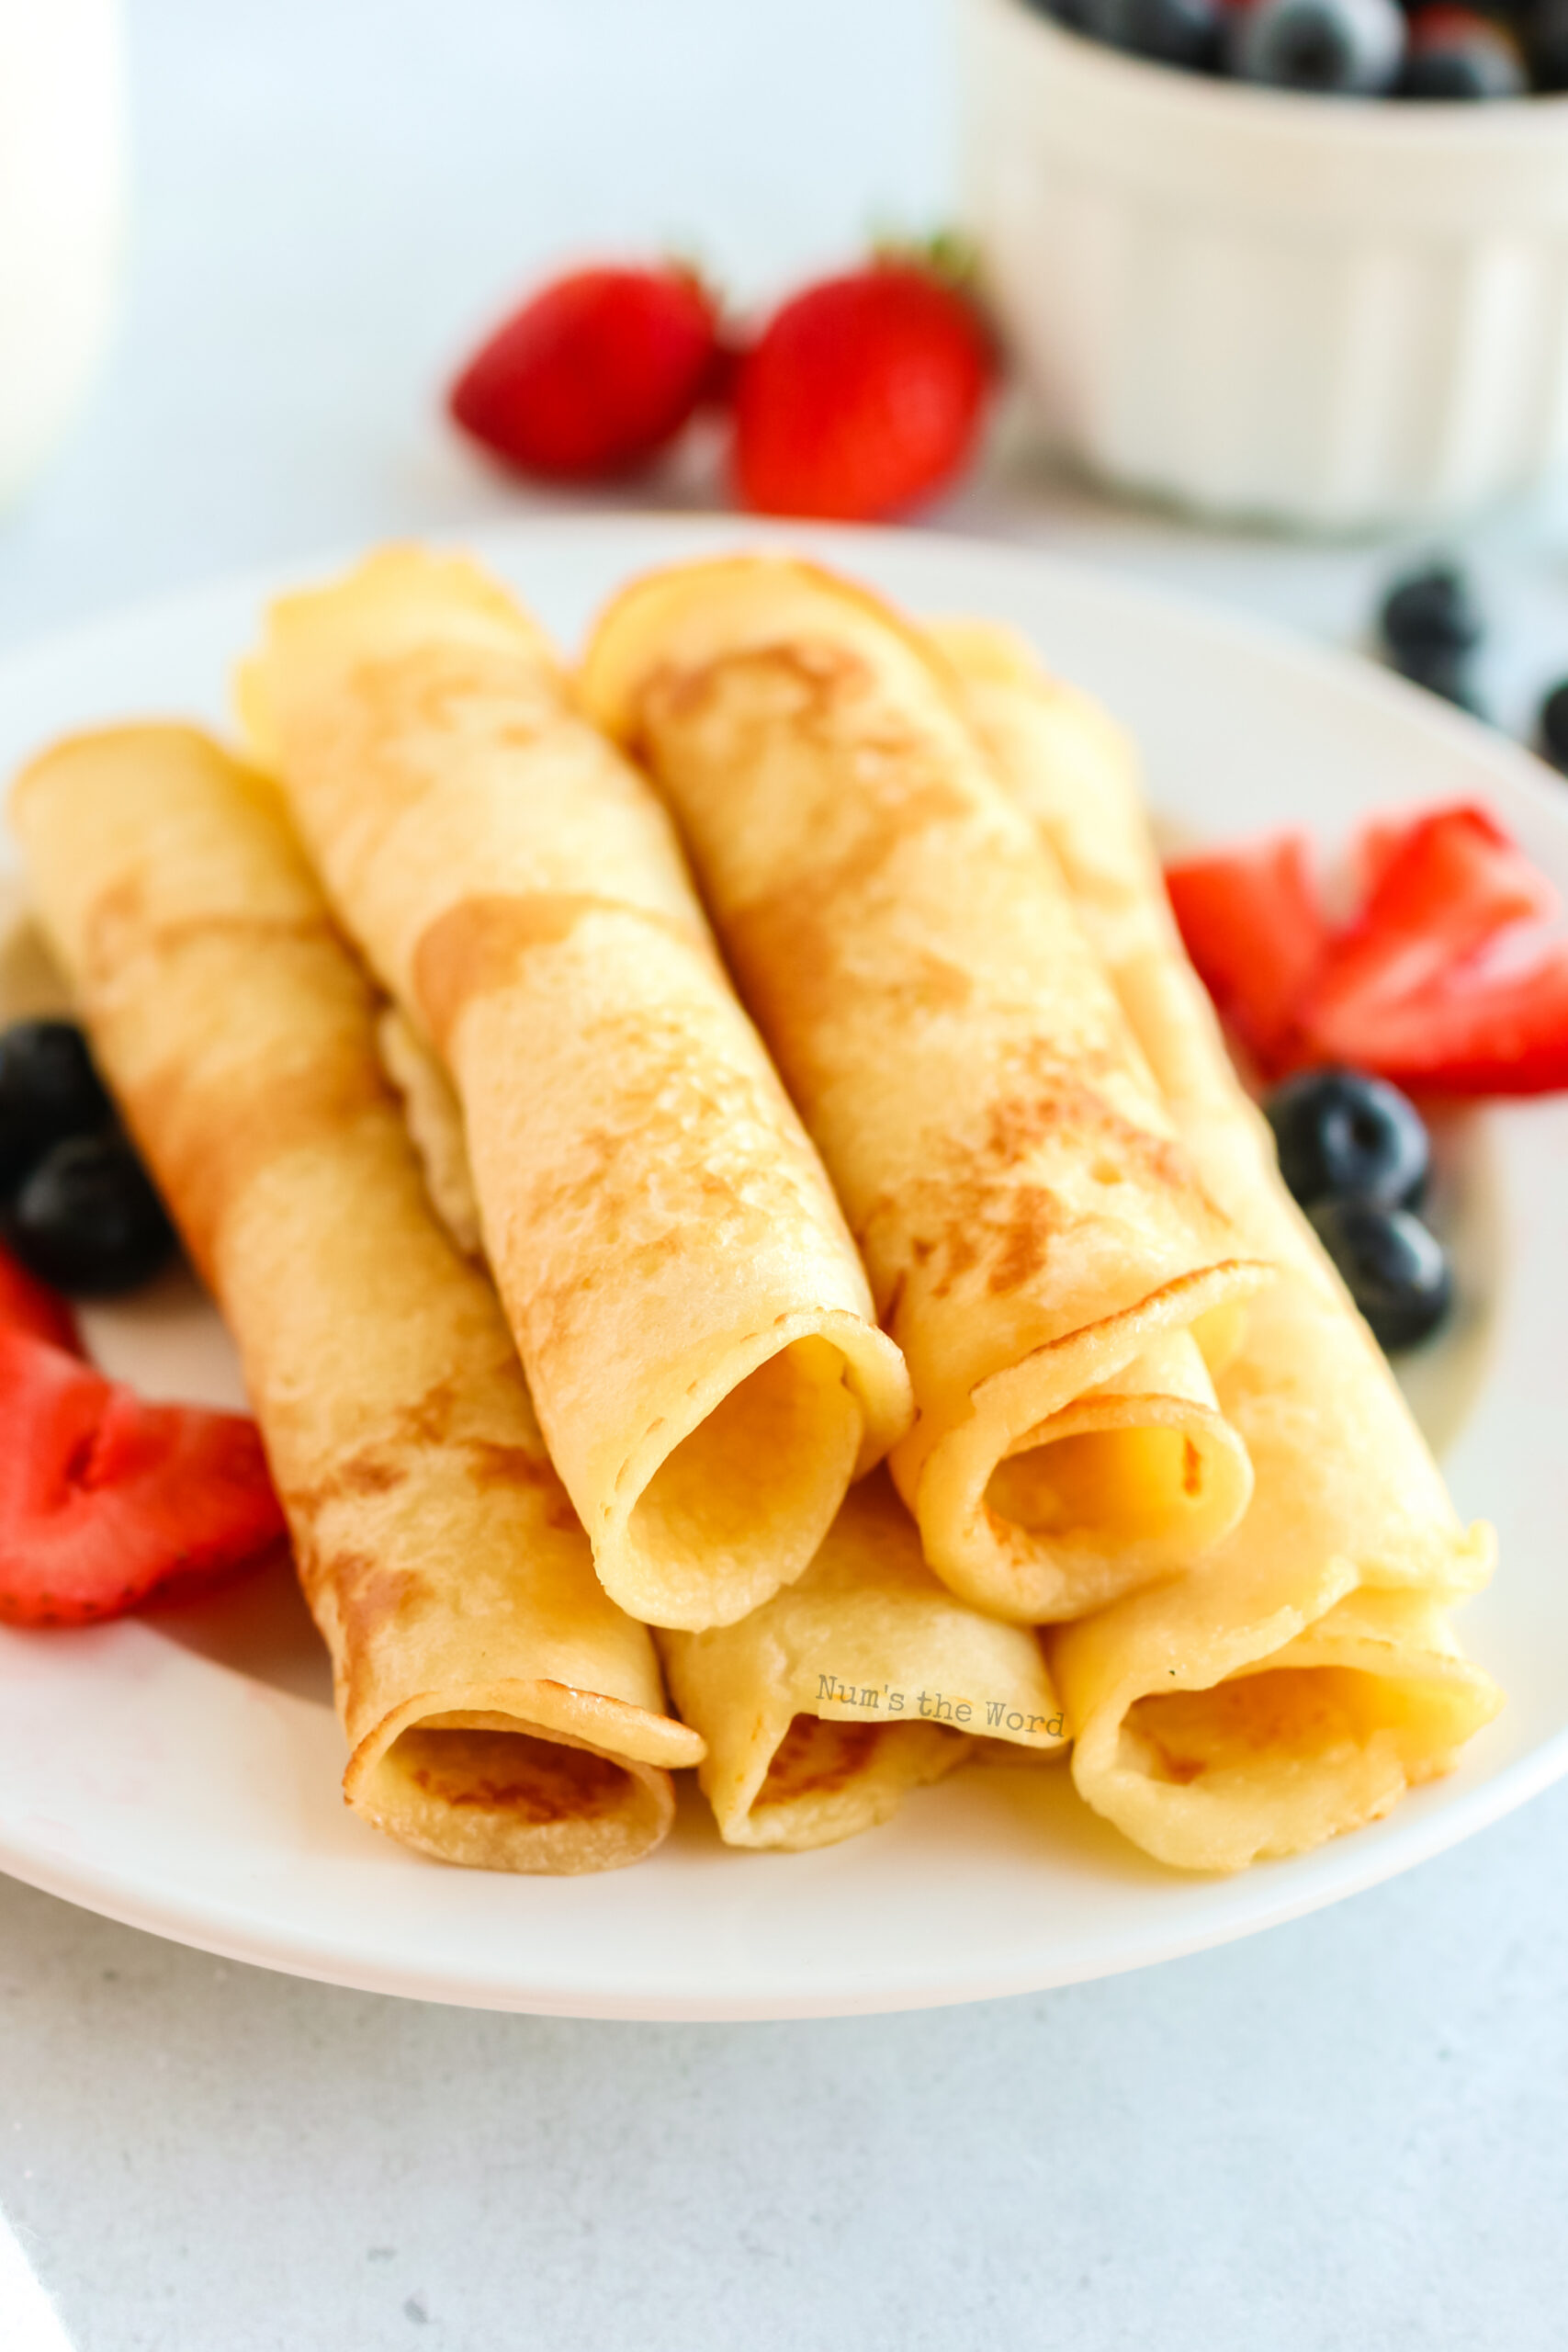 pancakes rolled up into logs